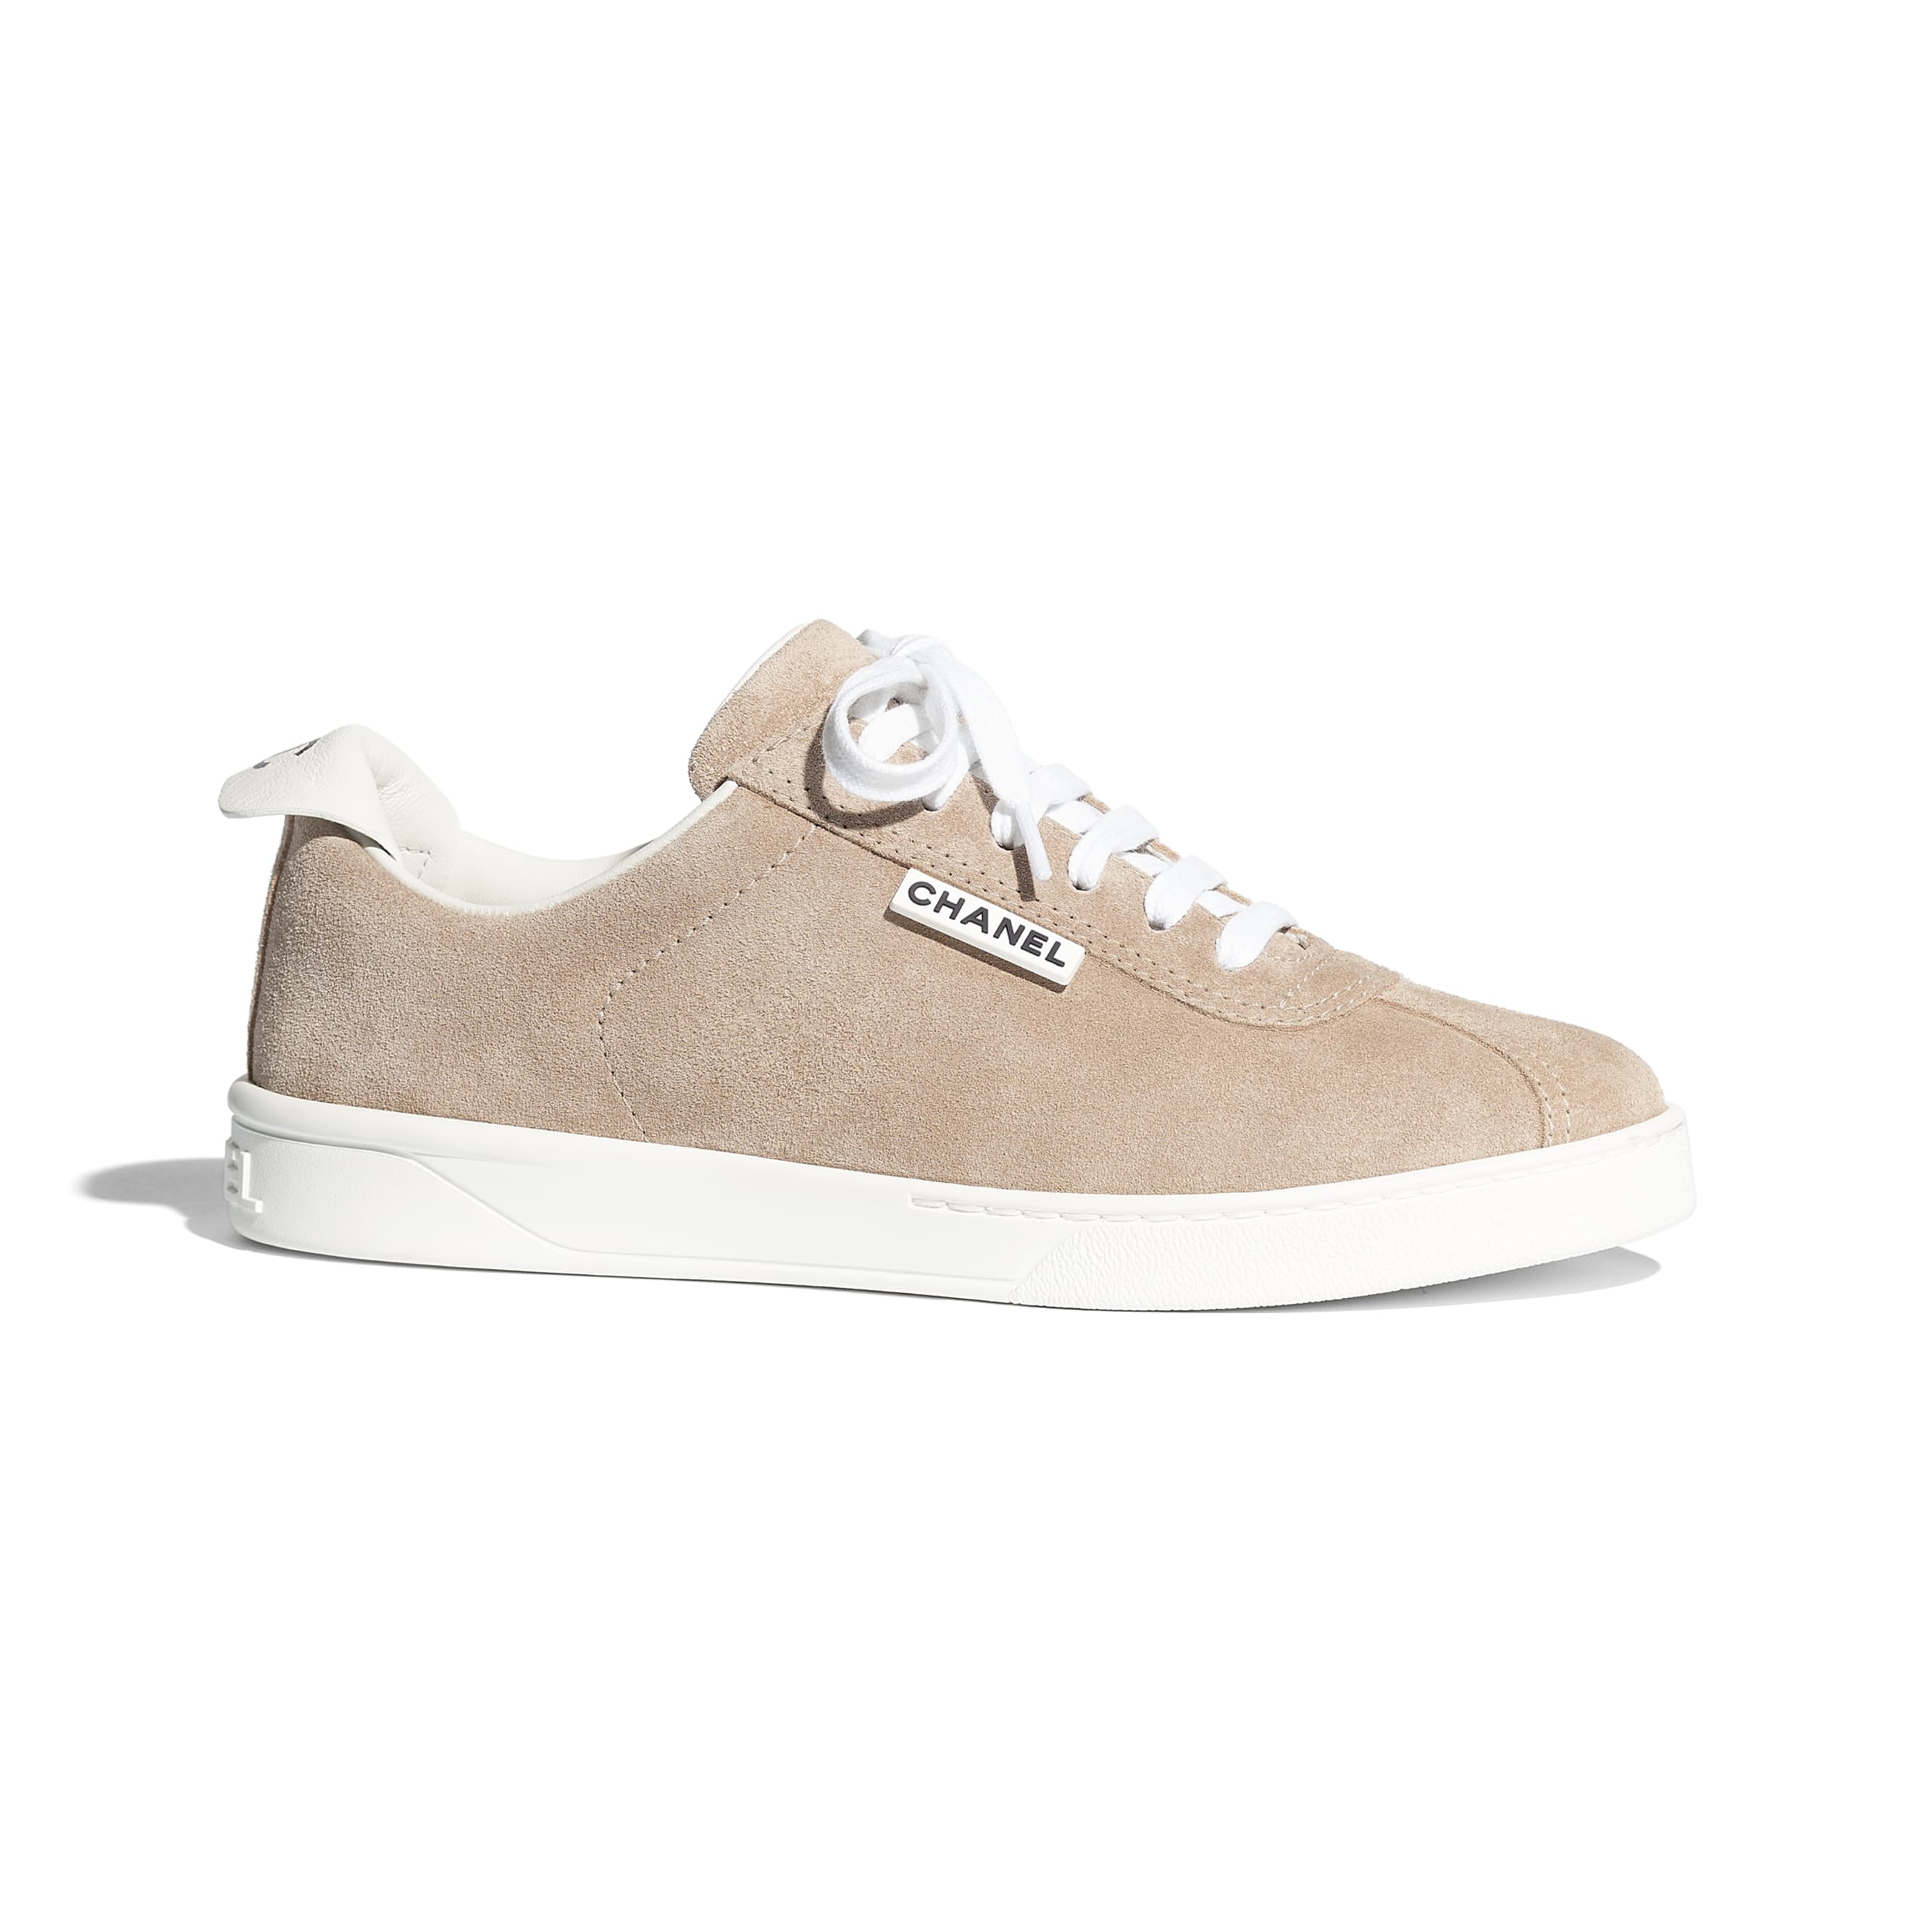 Trainers - Dark Beige - Suede Calfskin - CHANEL - Default view - see standard sized version